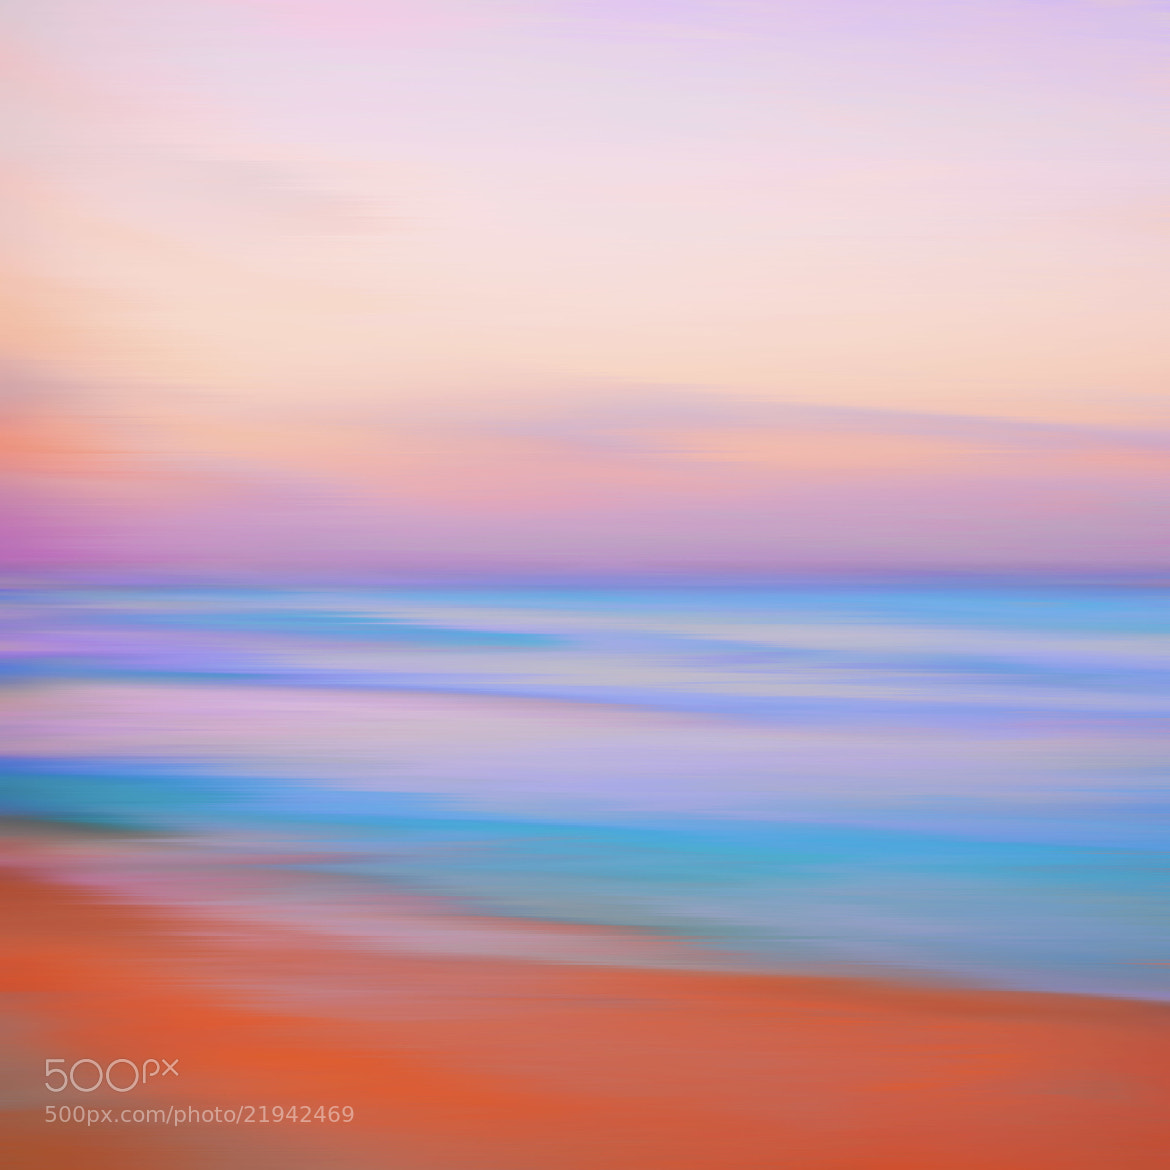 Photograph BeachAndSeaAtTwilight by Coolor Foto on 500px